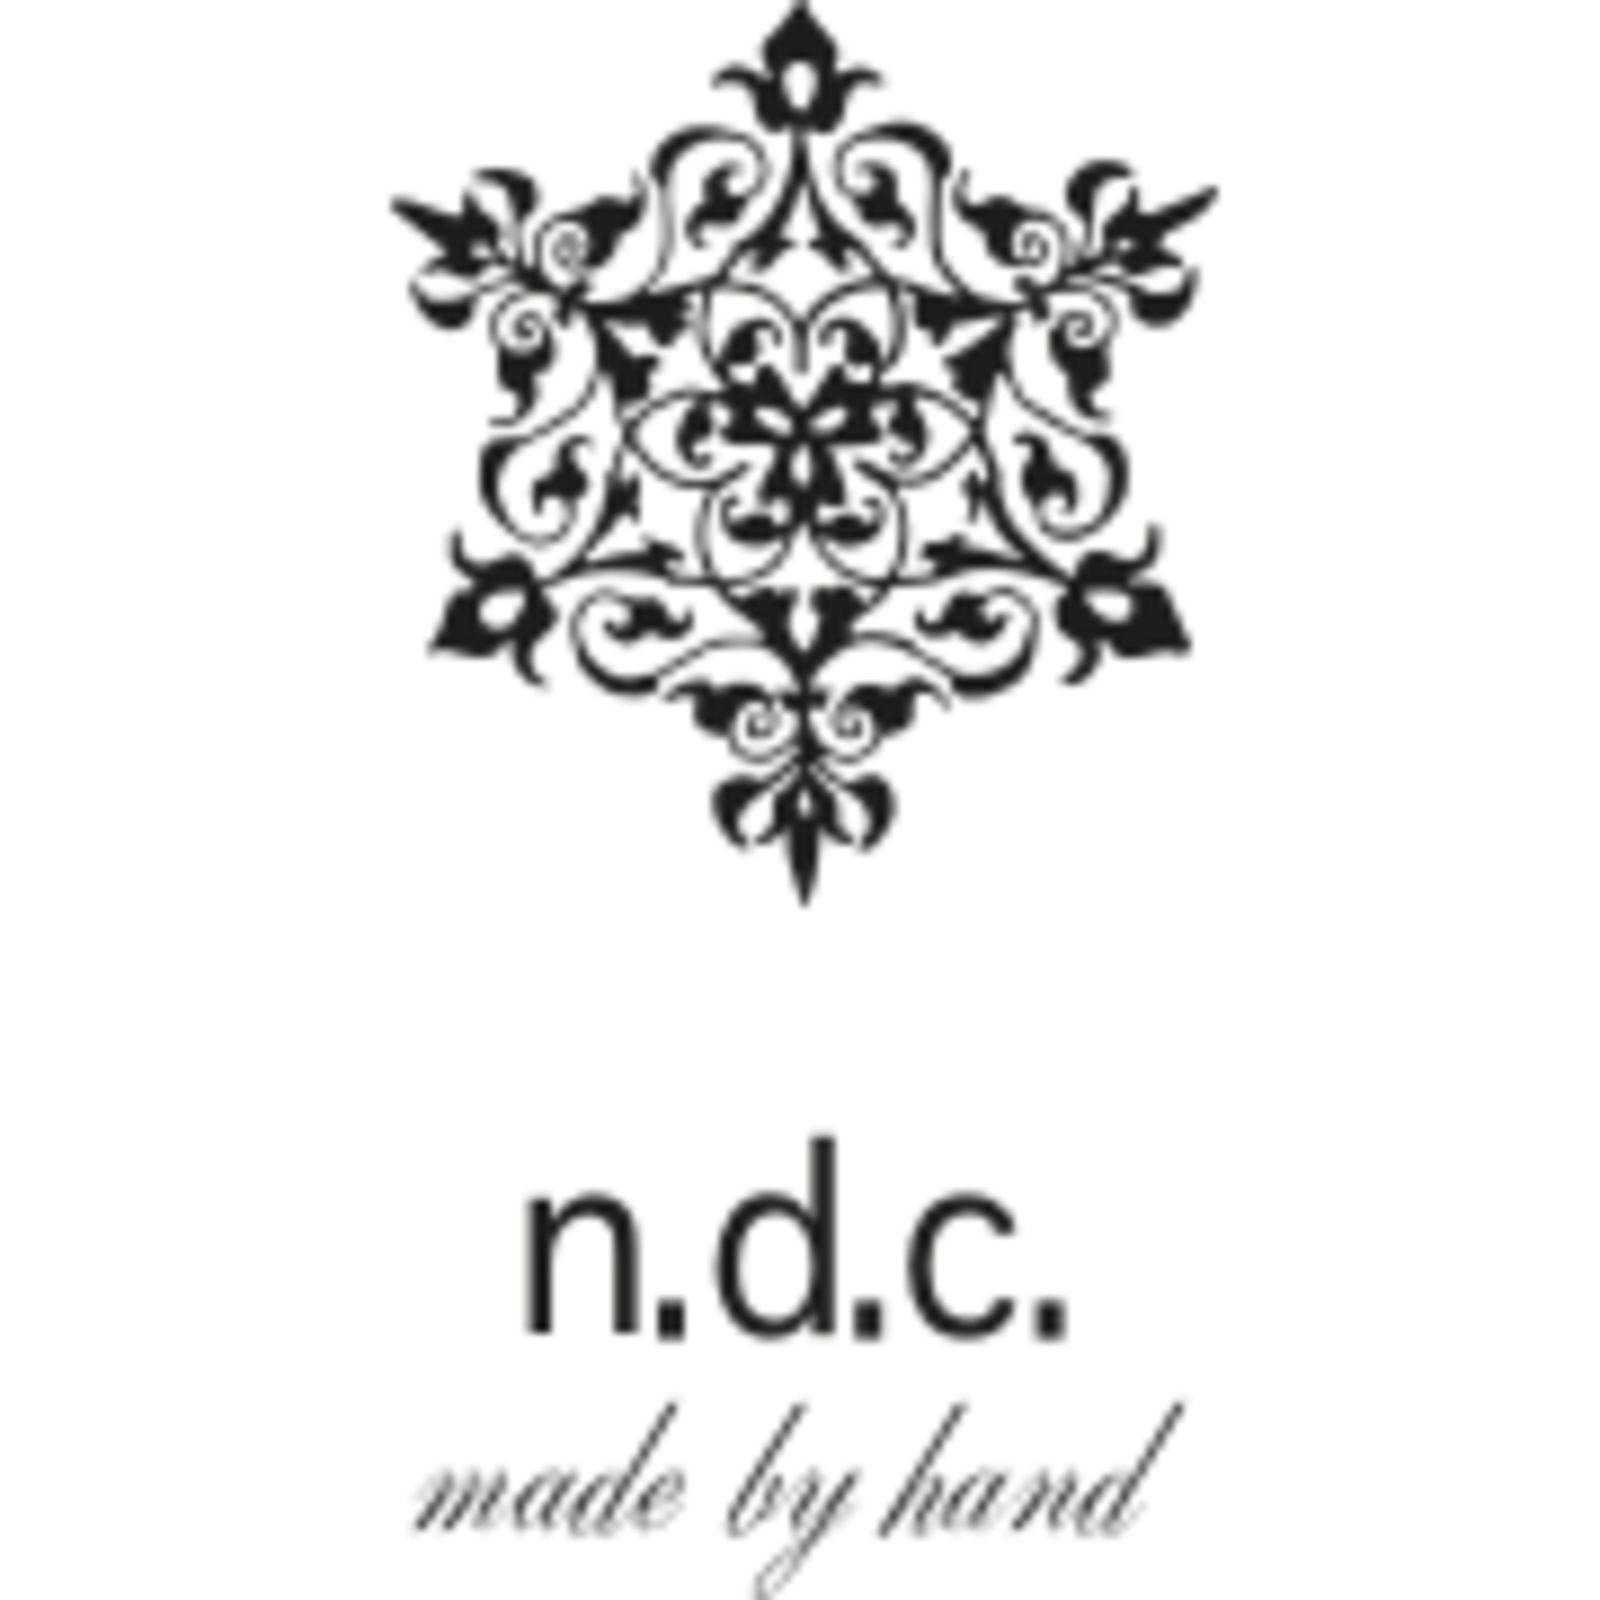 n.d.c made by hand